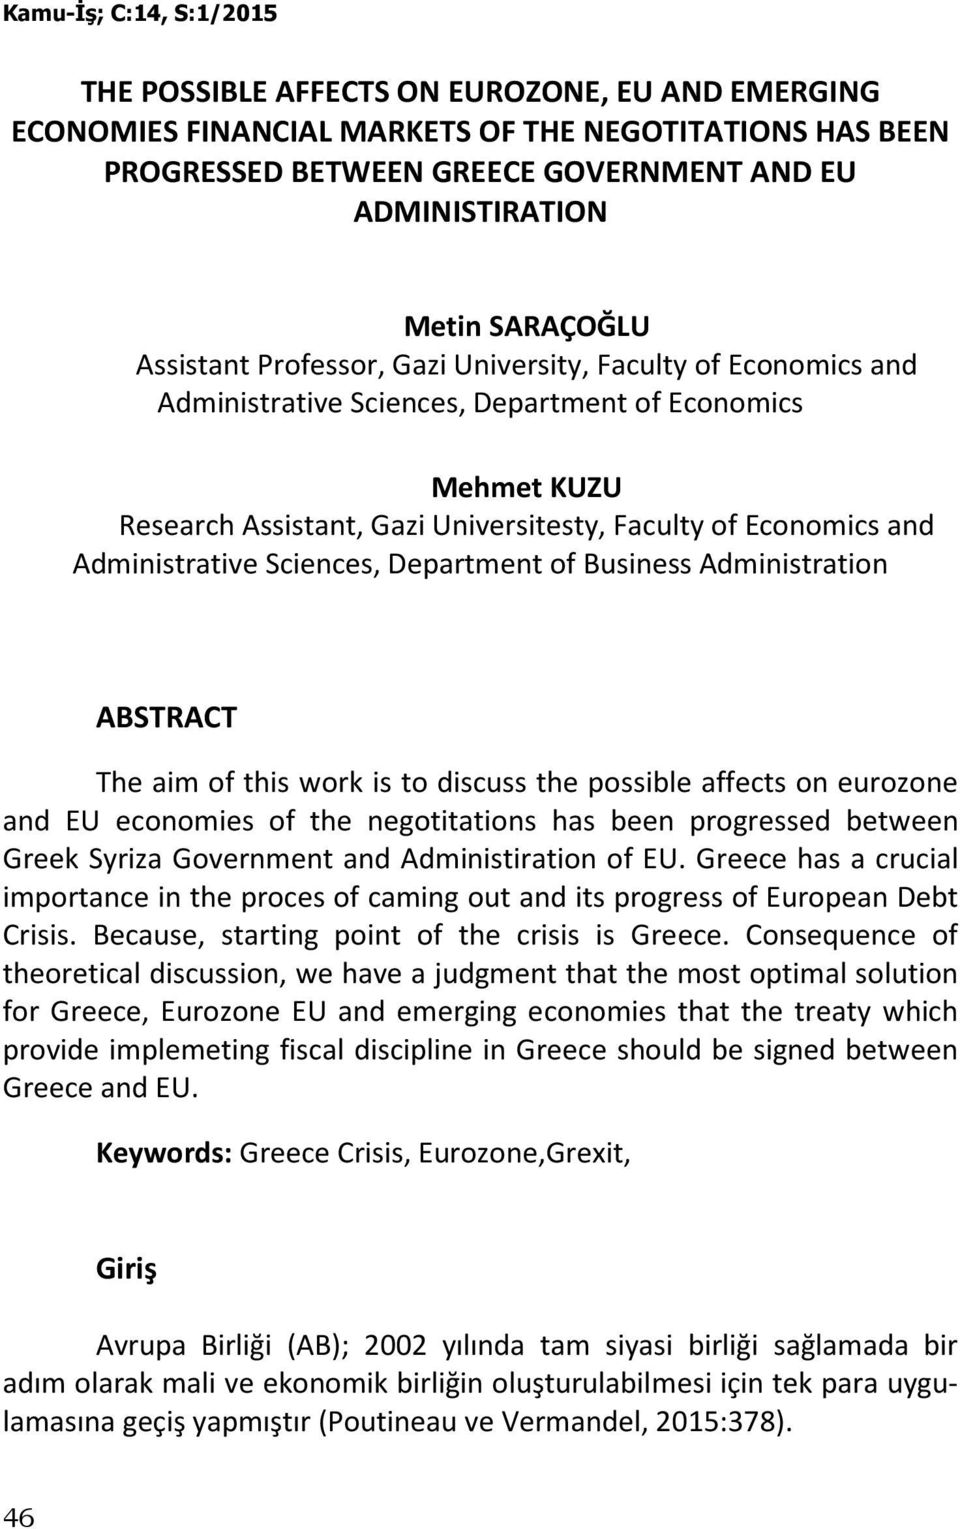 Sciences, Department of Business Administration ABSTRACT The aim of this work is to discuss the possible affects on eurozone and EU economies of the negotitations has been progressed between Greek